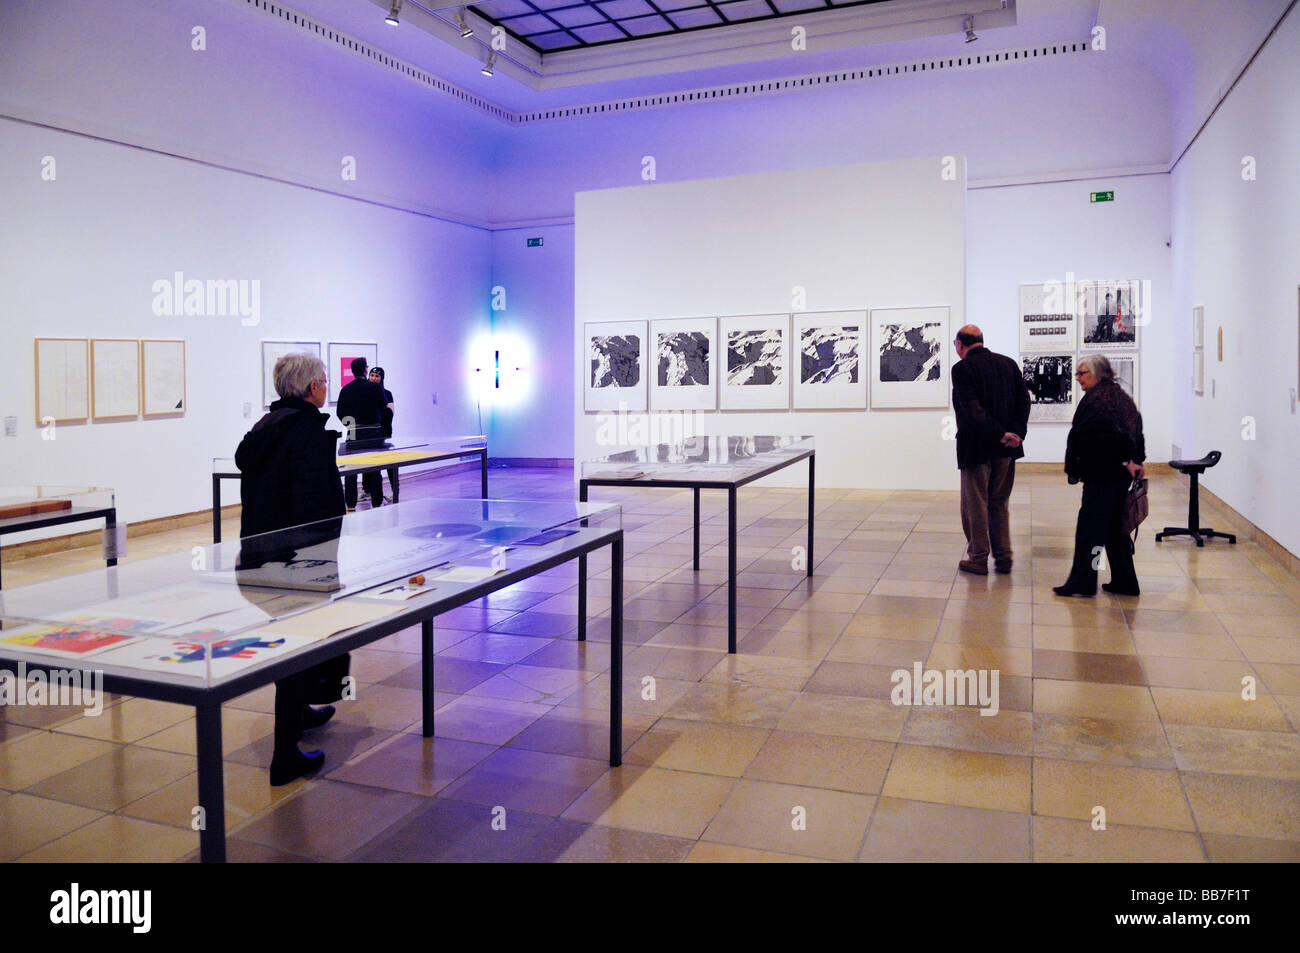 Exhibition in the Haus der Kunst, House of Art, Munich, Bavaria, Germany, Europe Stock Photo